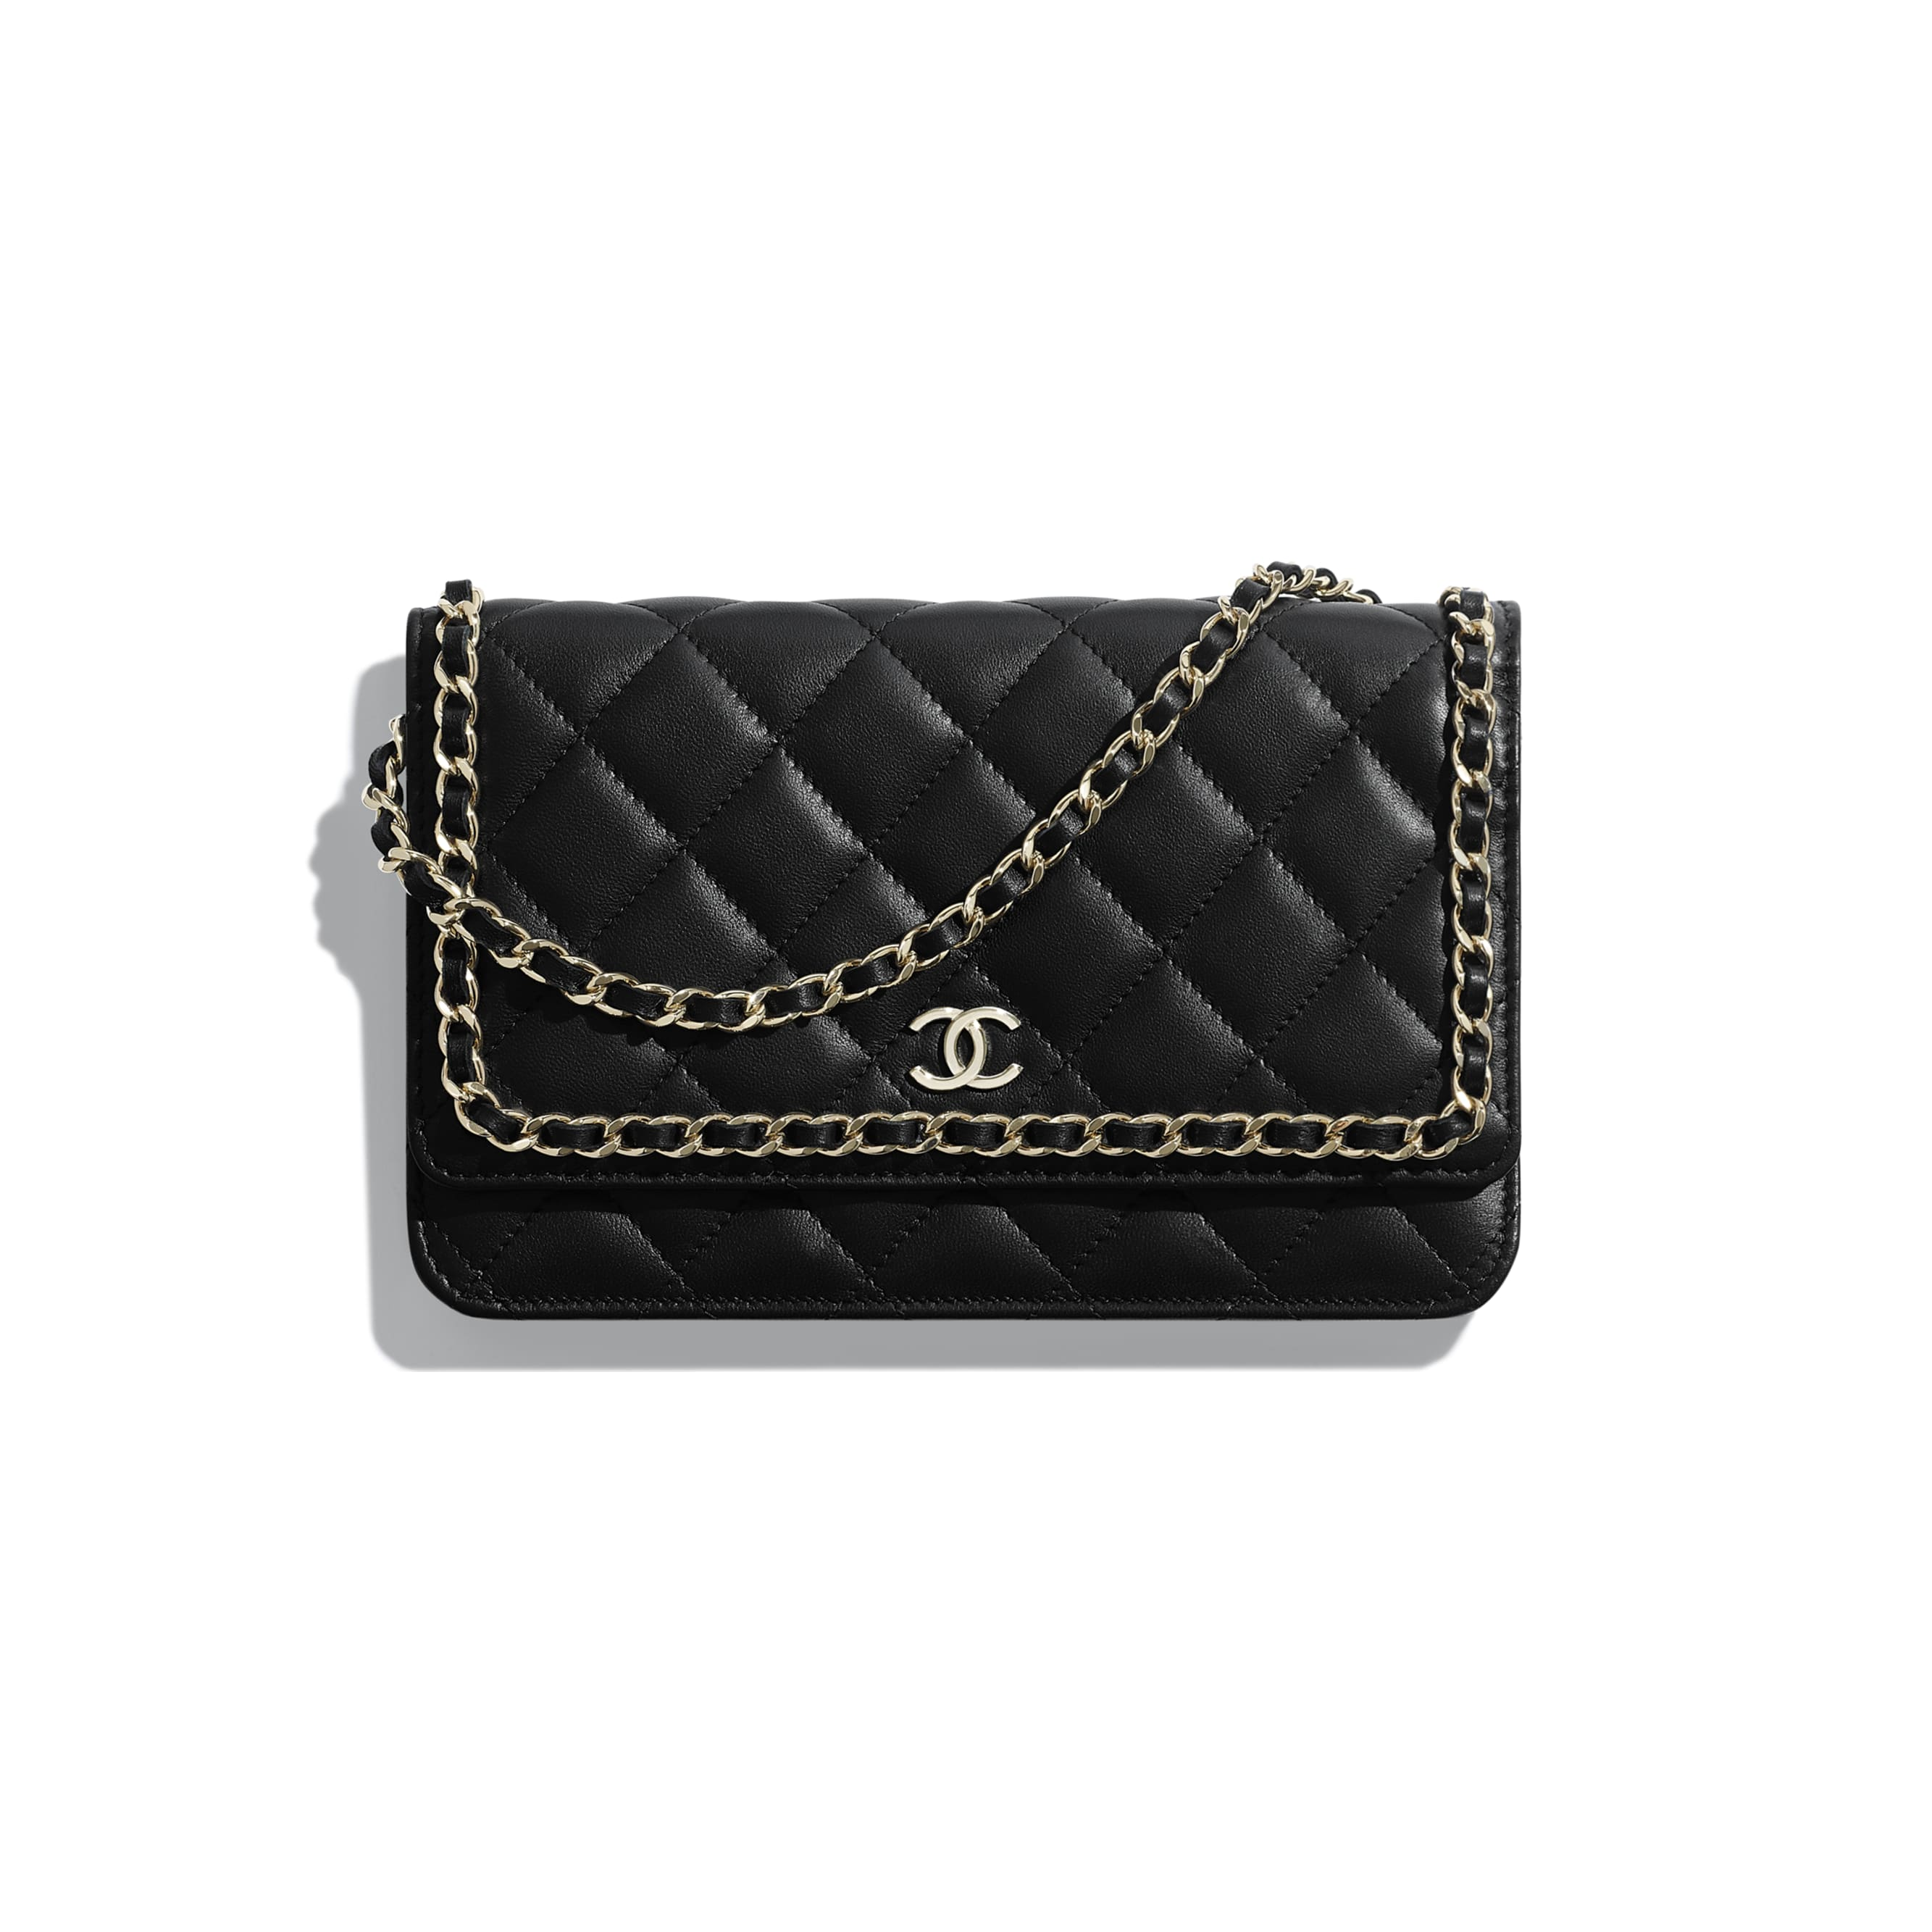 Wallet on Chain - Black - Lambskin, Chains & Gold-Tone Metal - Default view - see standard sized version